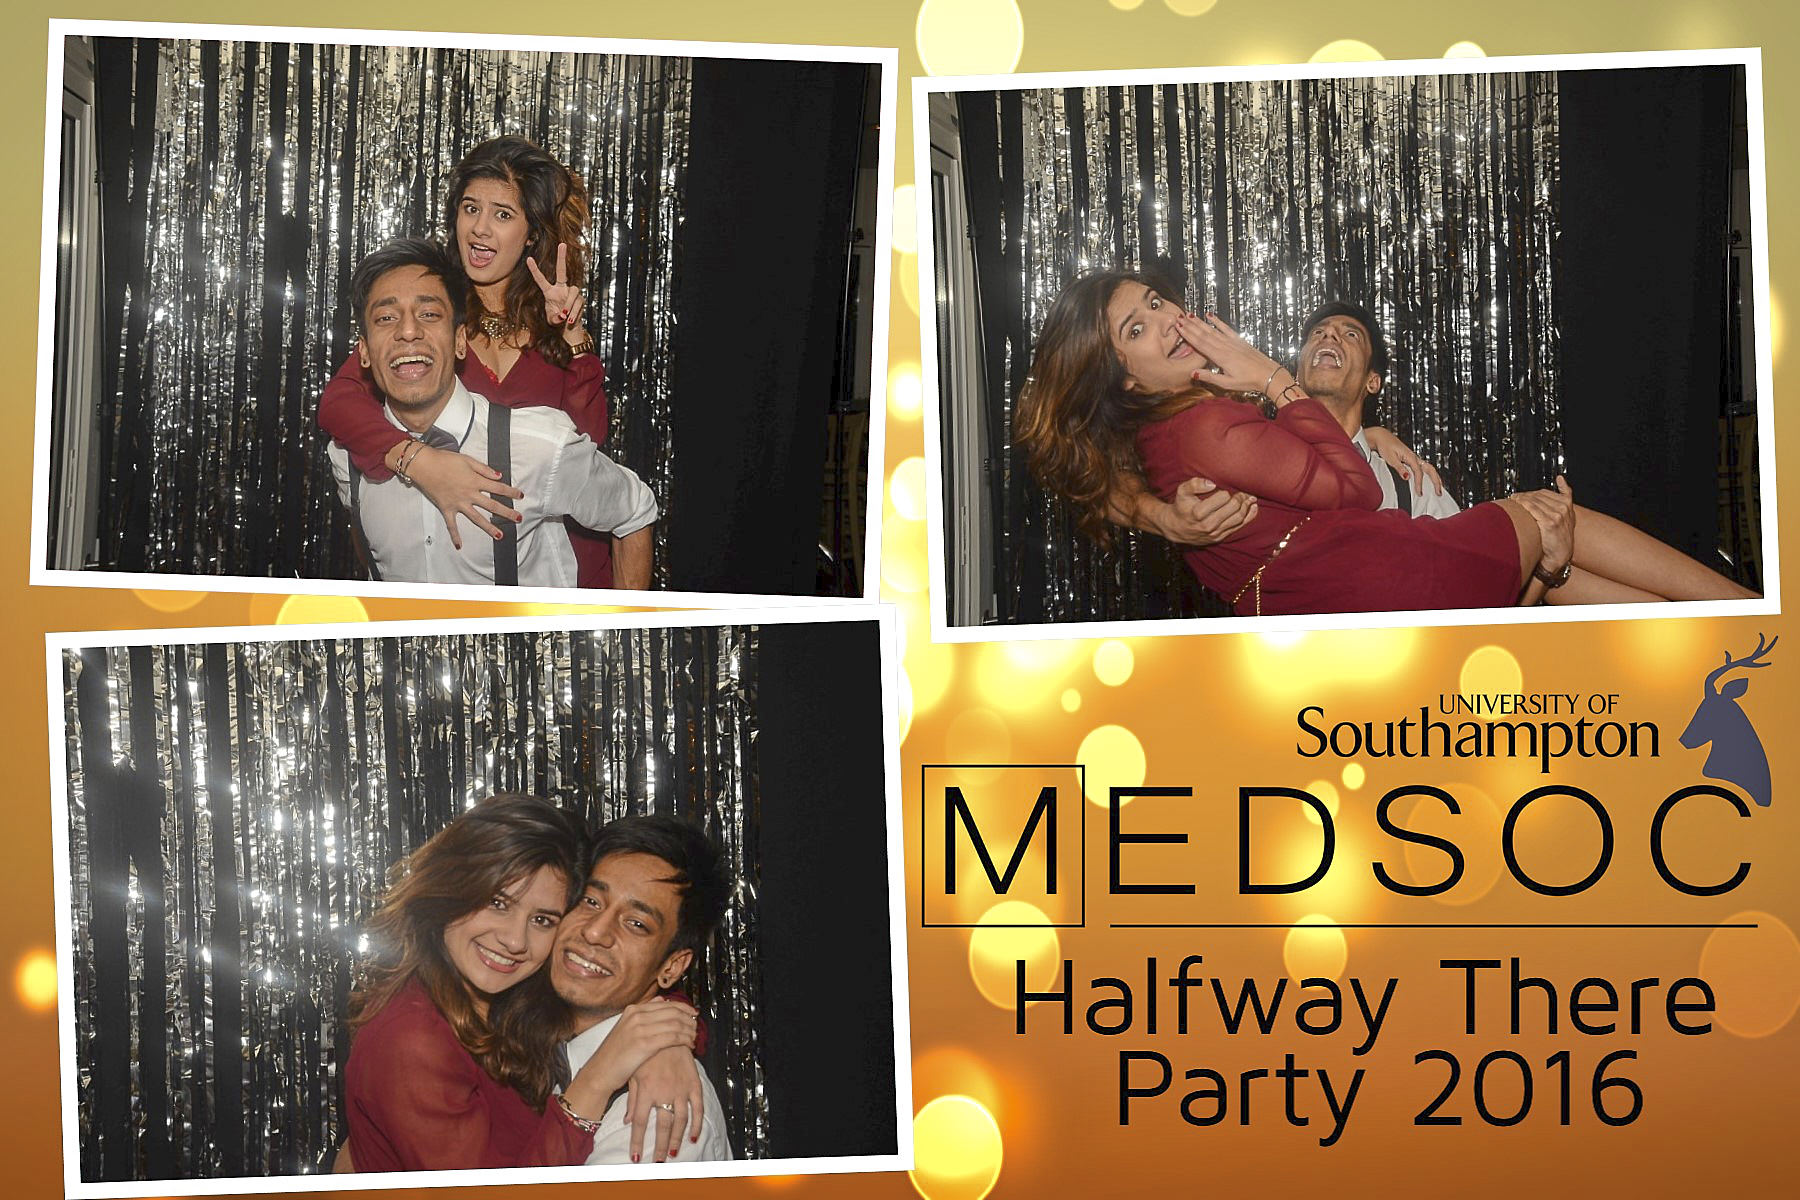 MedSoc Halfway There Party 2016 DS005317.jpg